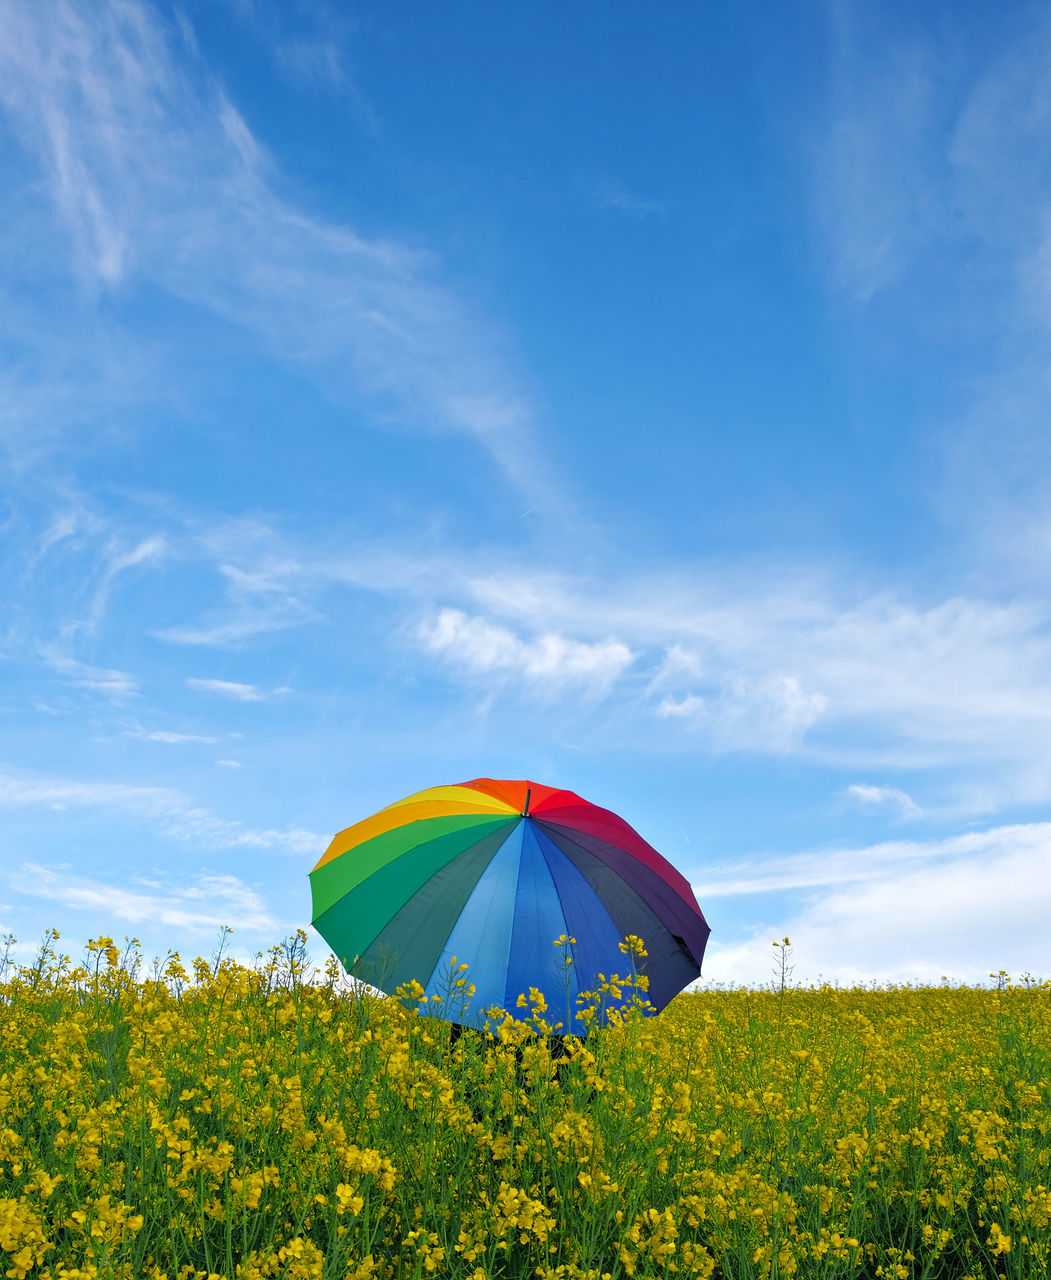 Umbrella Against Field Of Yellow Flowers